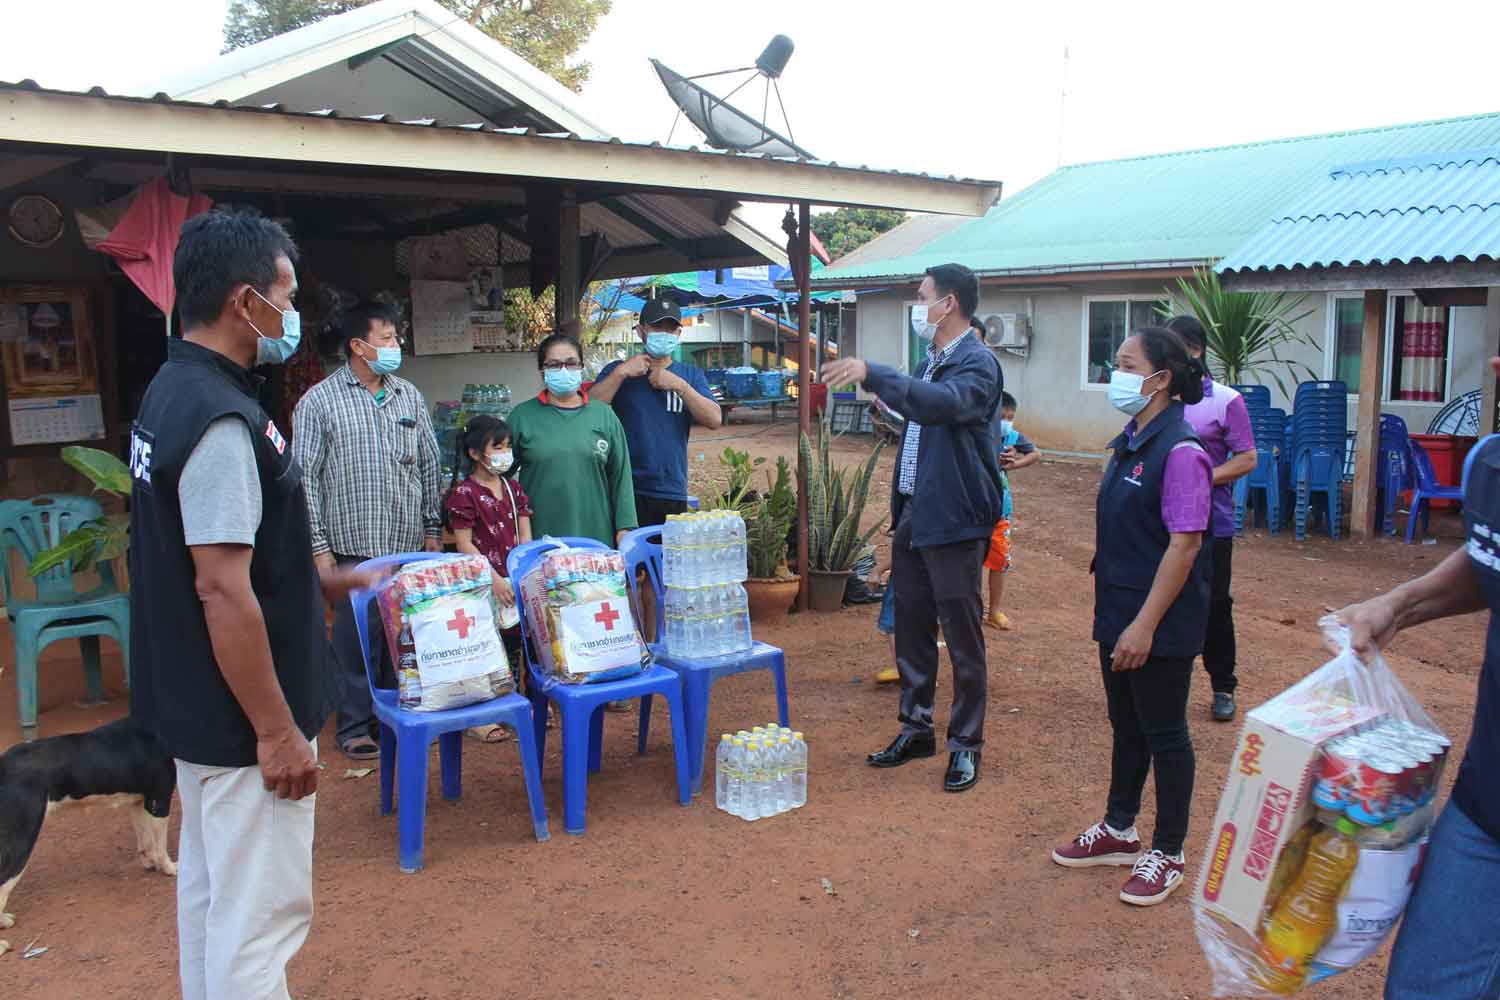 Soeng Sang district officials distribute bags of necessities to residents of Moo 7 and Moo 14 villages in tambon Kut Bot, which were locked down after a 7-year-old boy visiting from Pathum Thani tested positive for Covid-19. (Photo: Prasit Tangprasert)